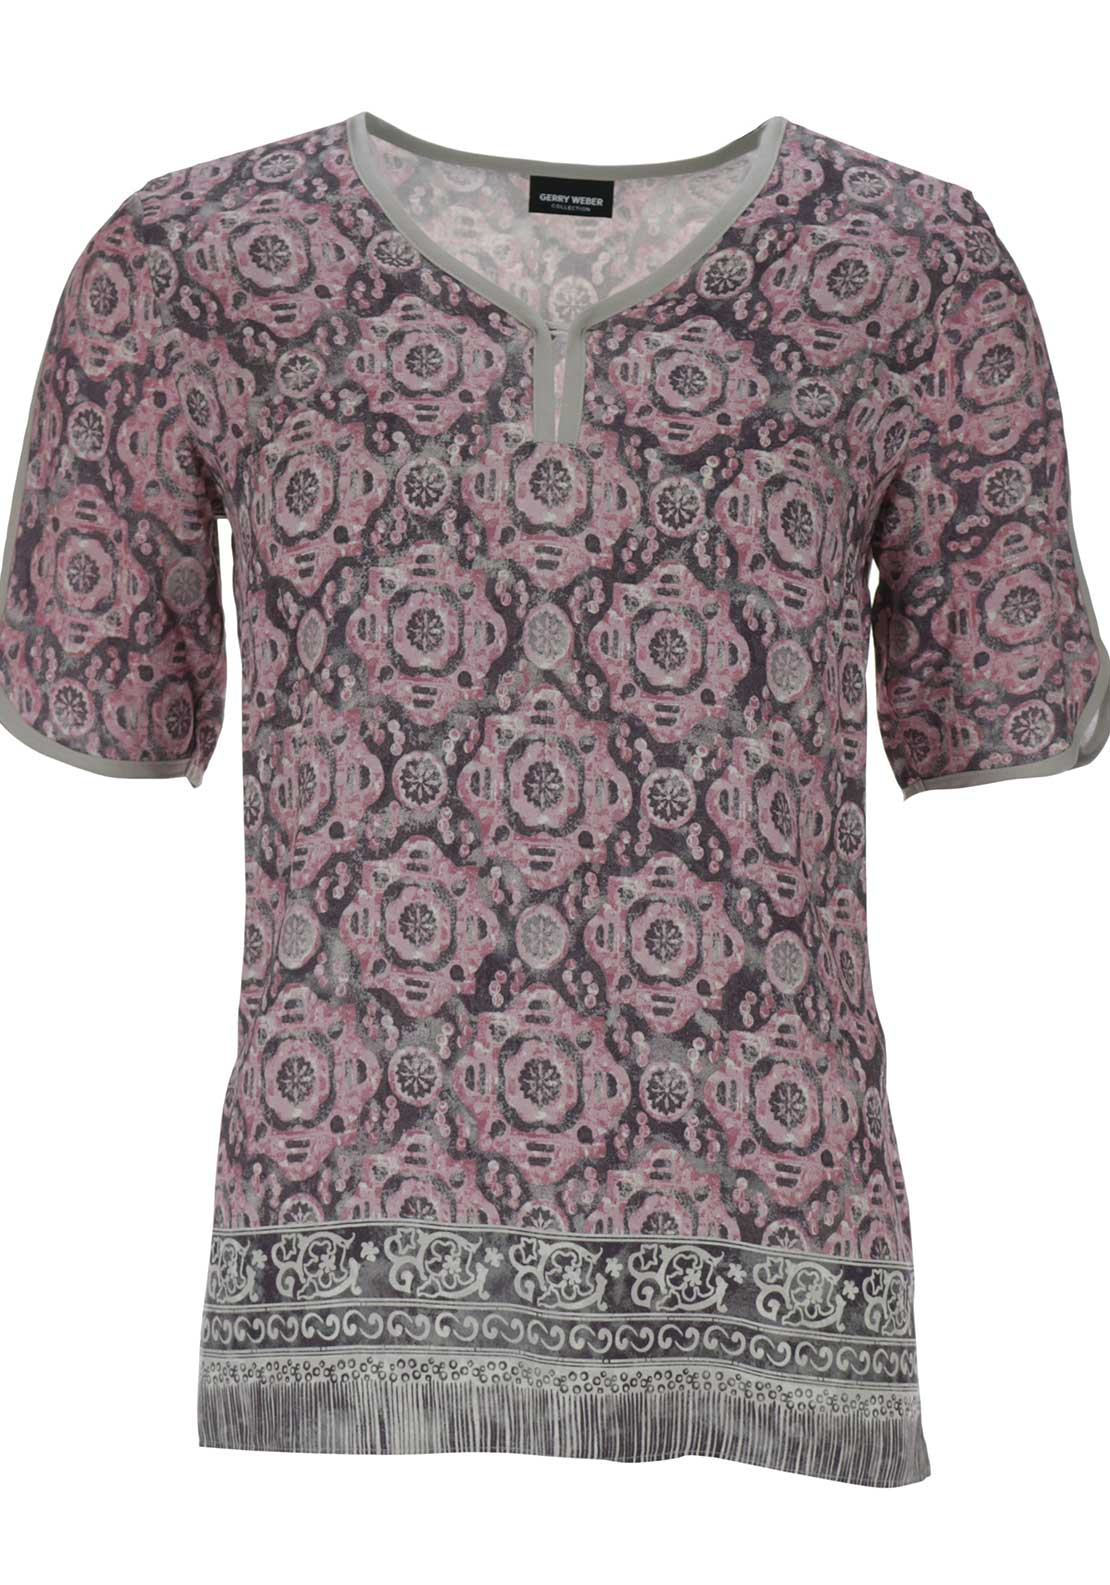 Gerry Weber Ethnic Print Short Sleeve Top, Pink Multi